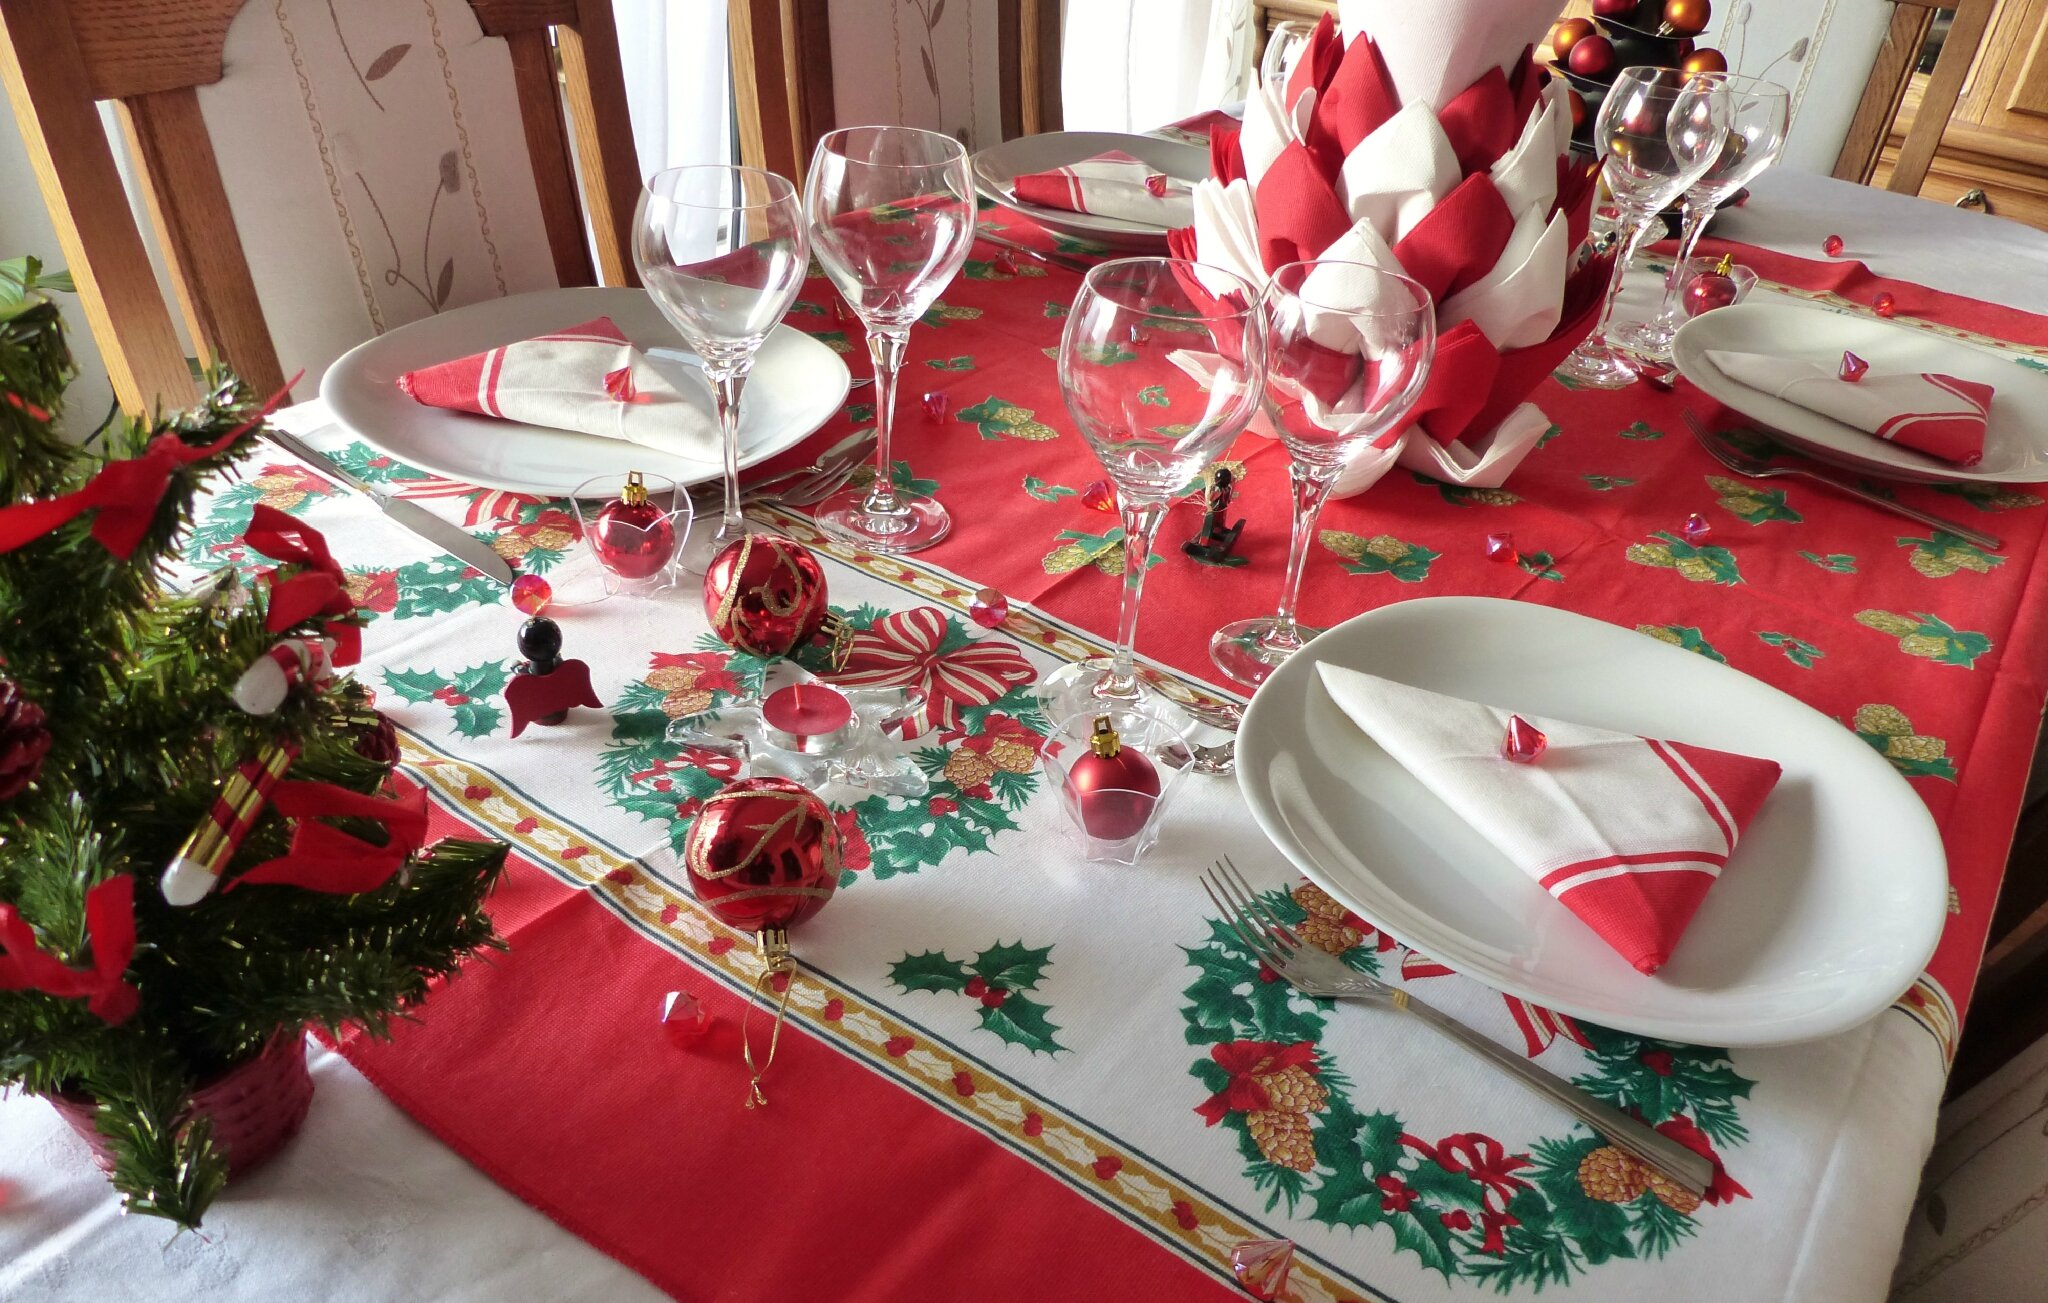 D coration de table clich d 39 un no l en rouge cuill re gour - Deco de table pour noel ...